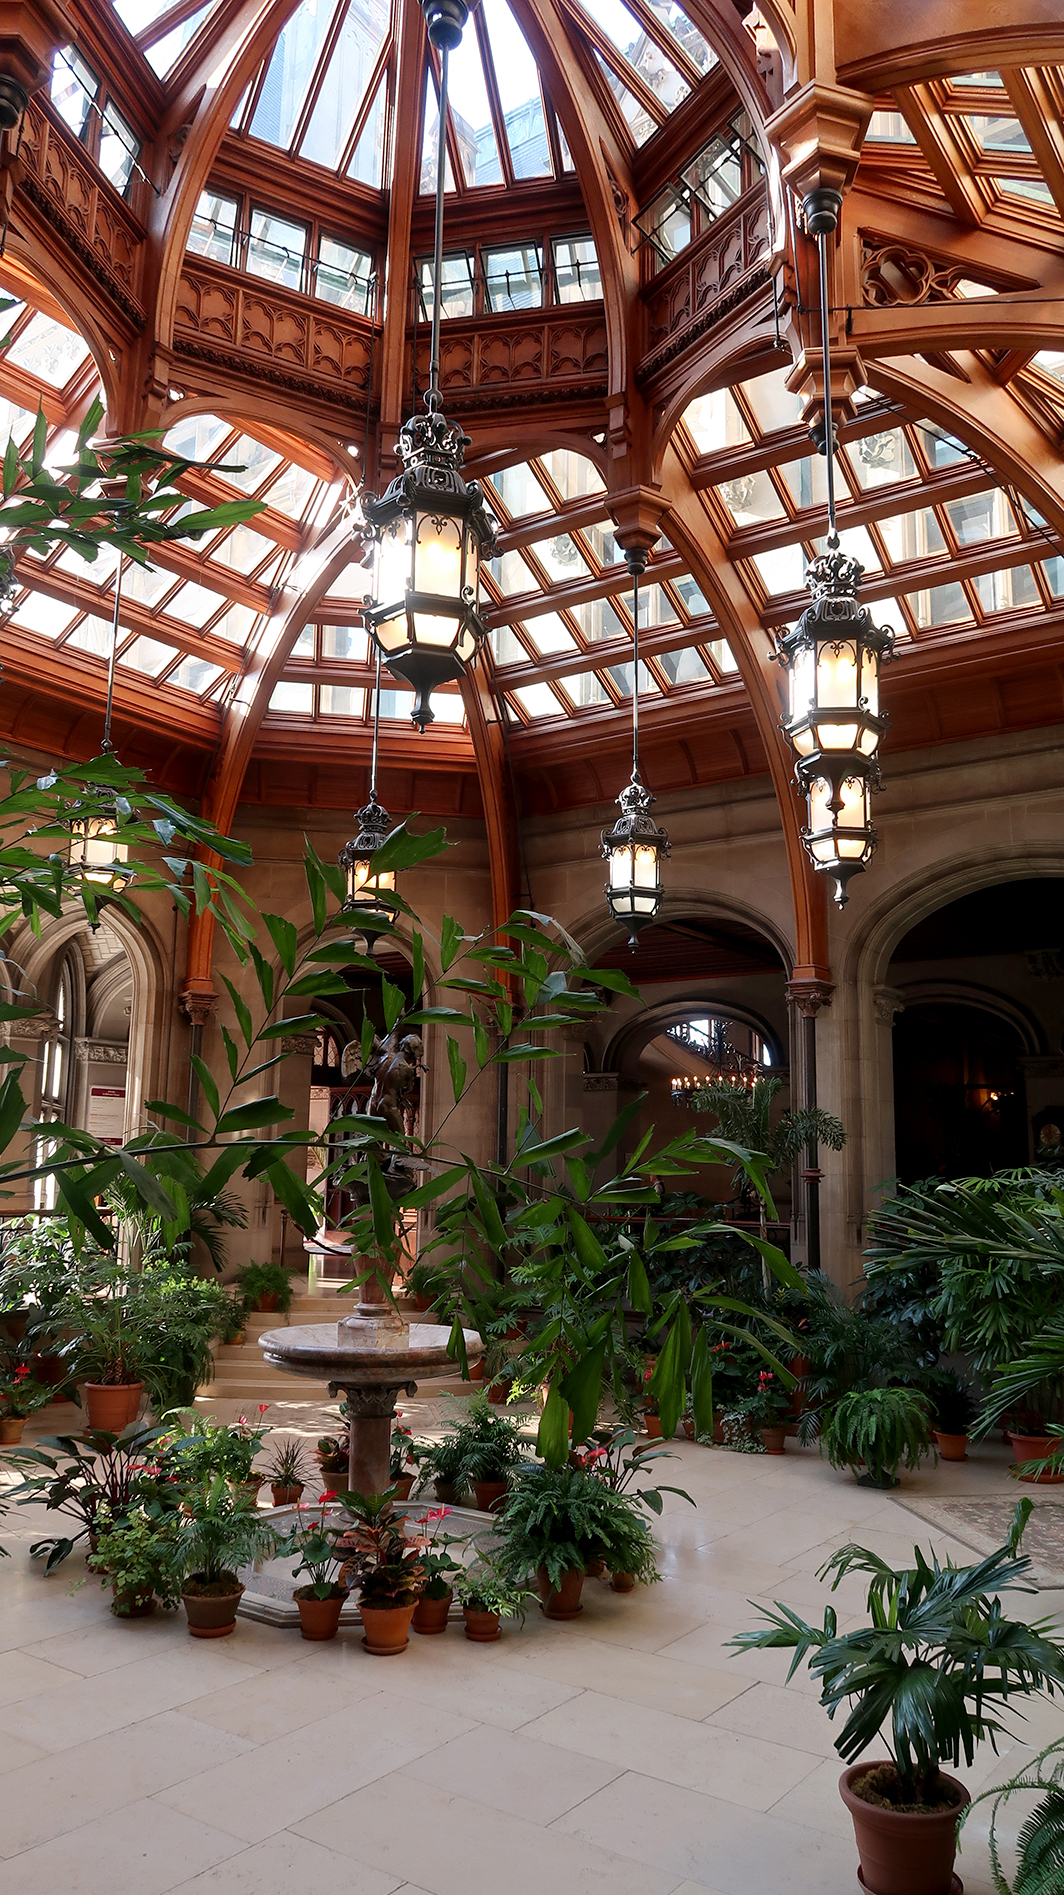 Winter Garden inside Biltmore Estates